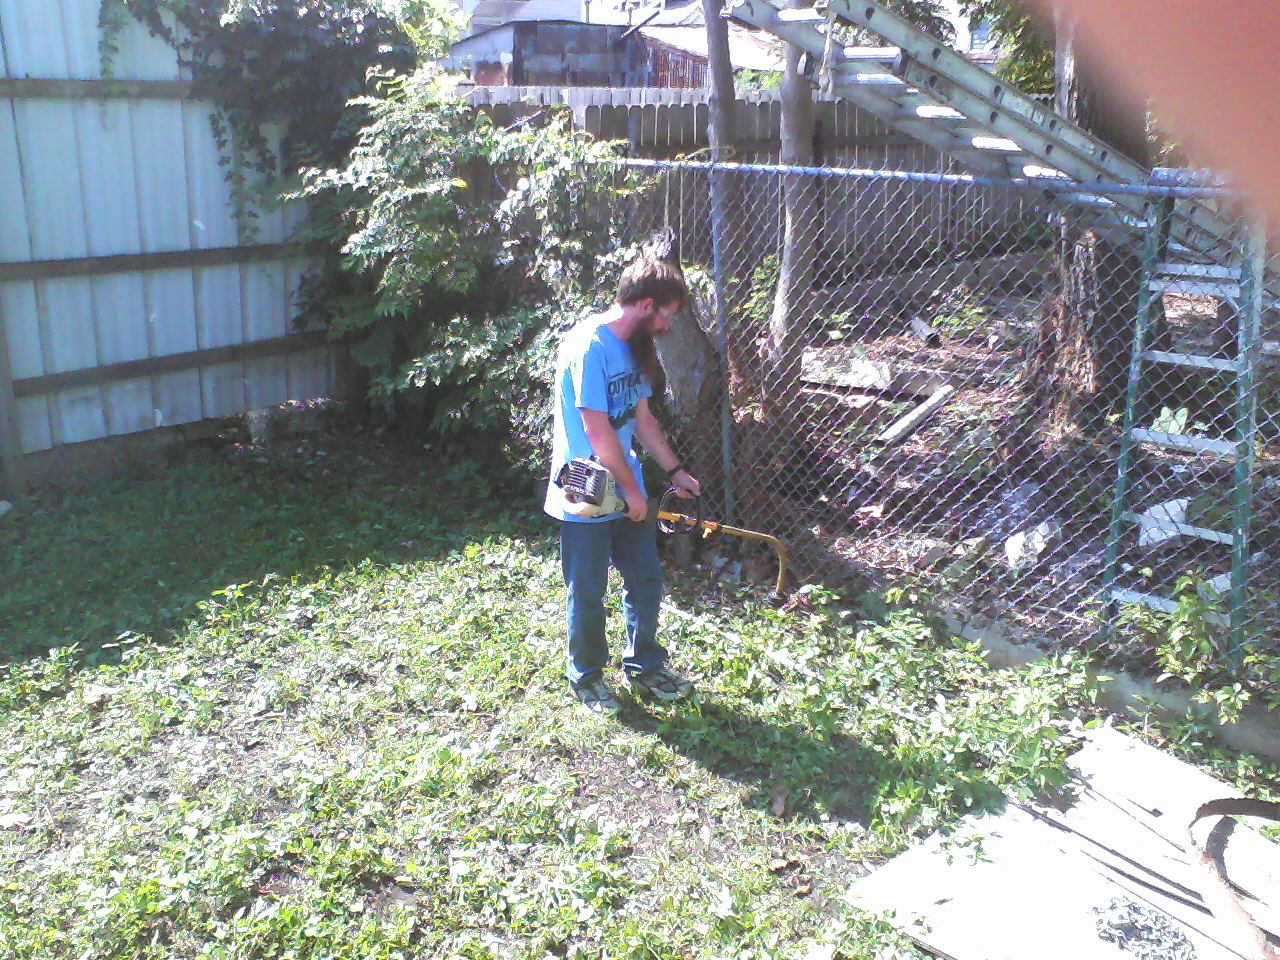 Whacking backyard weeds.